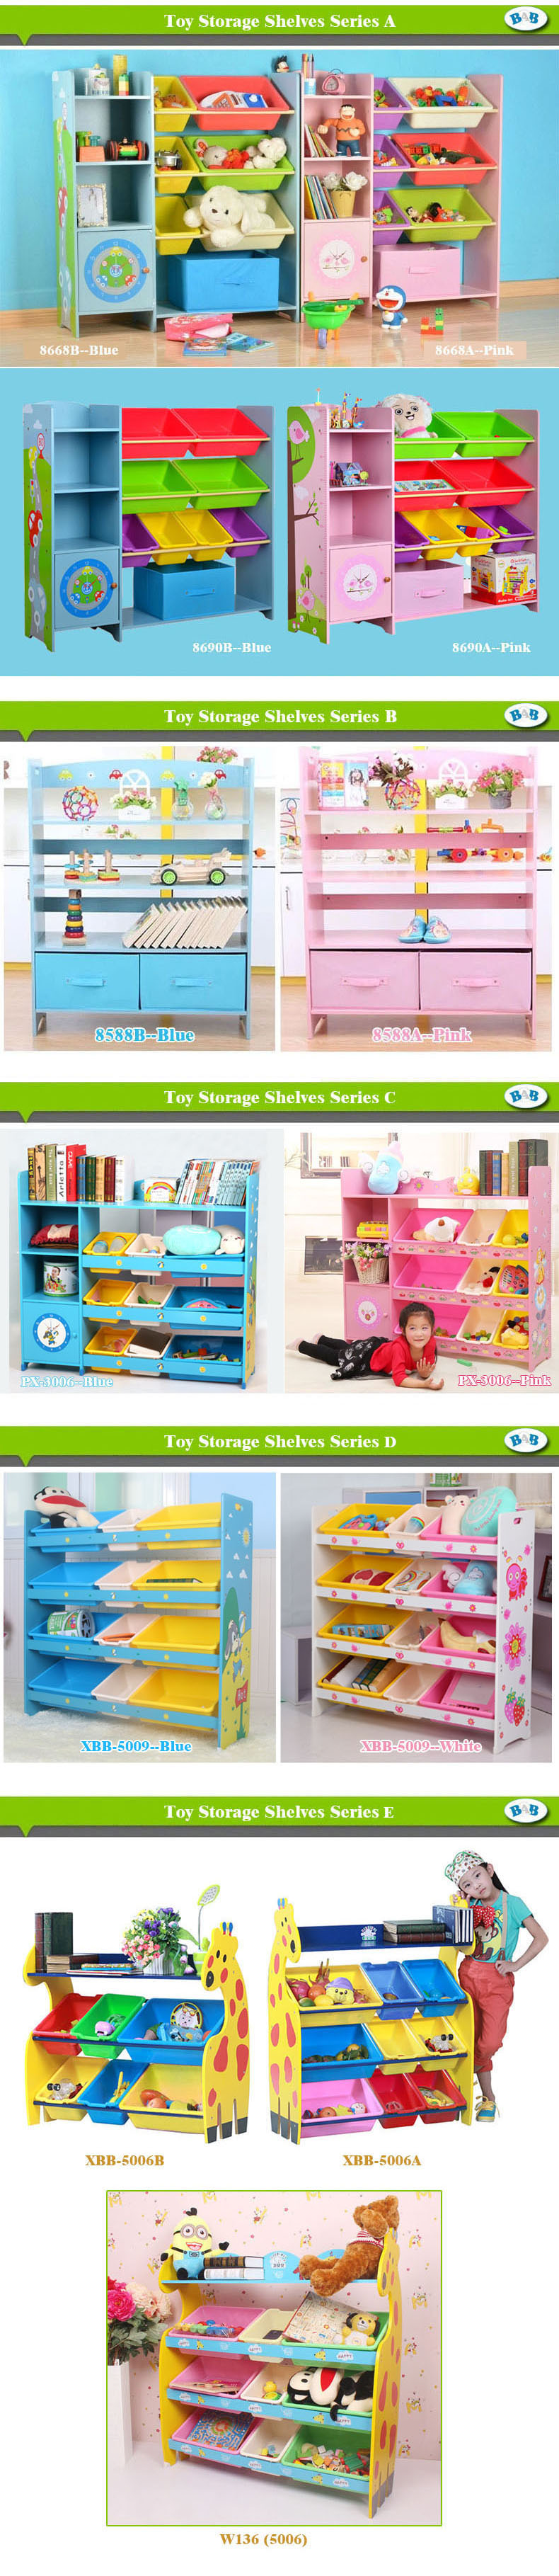 Buy price adjusted dailyToy Storage ShelfBook Shelf  : 0fd25dd6 887f 40b2 a48a 6f88c3dc31c7 from www.bydeals.net size 790 x 3638 jpeg 539kB